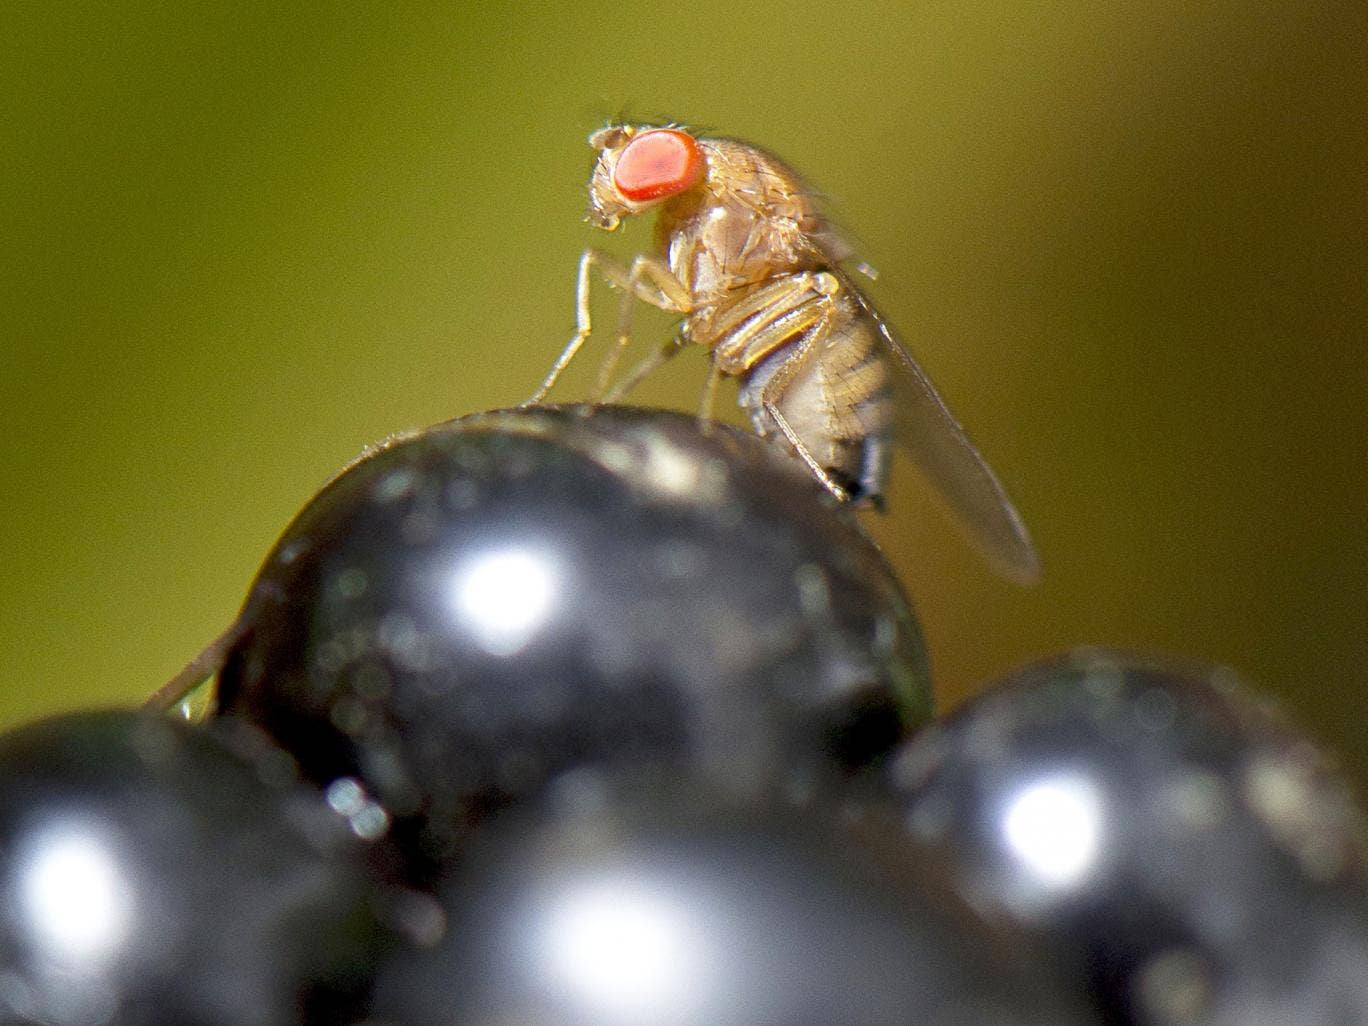 Flies' hearts can be controlled with lasers, giving hope ...